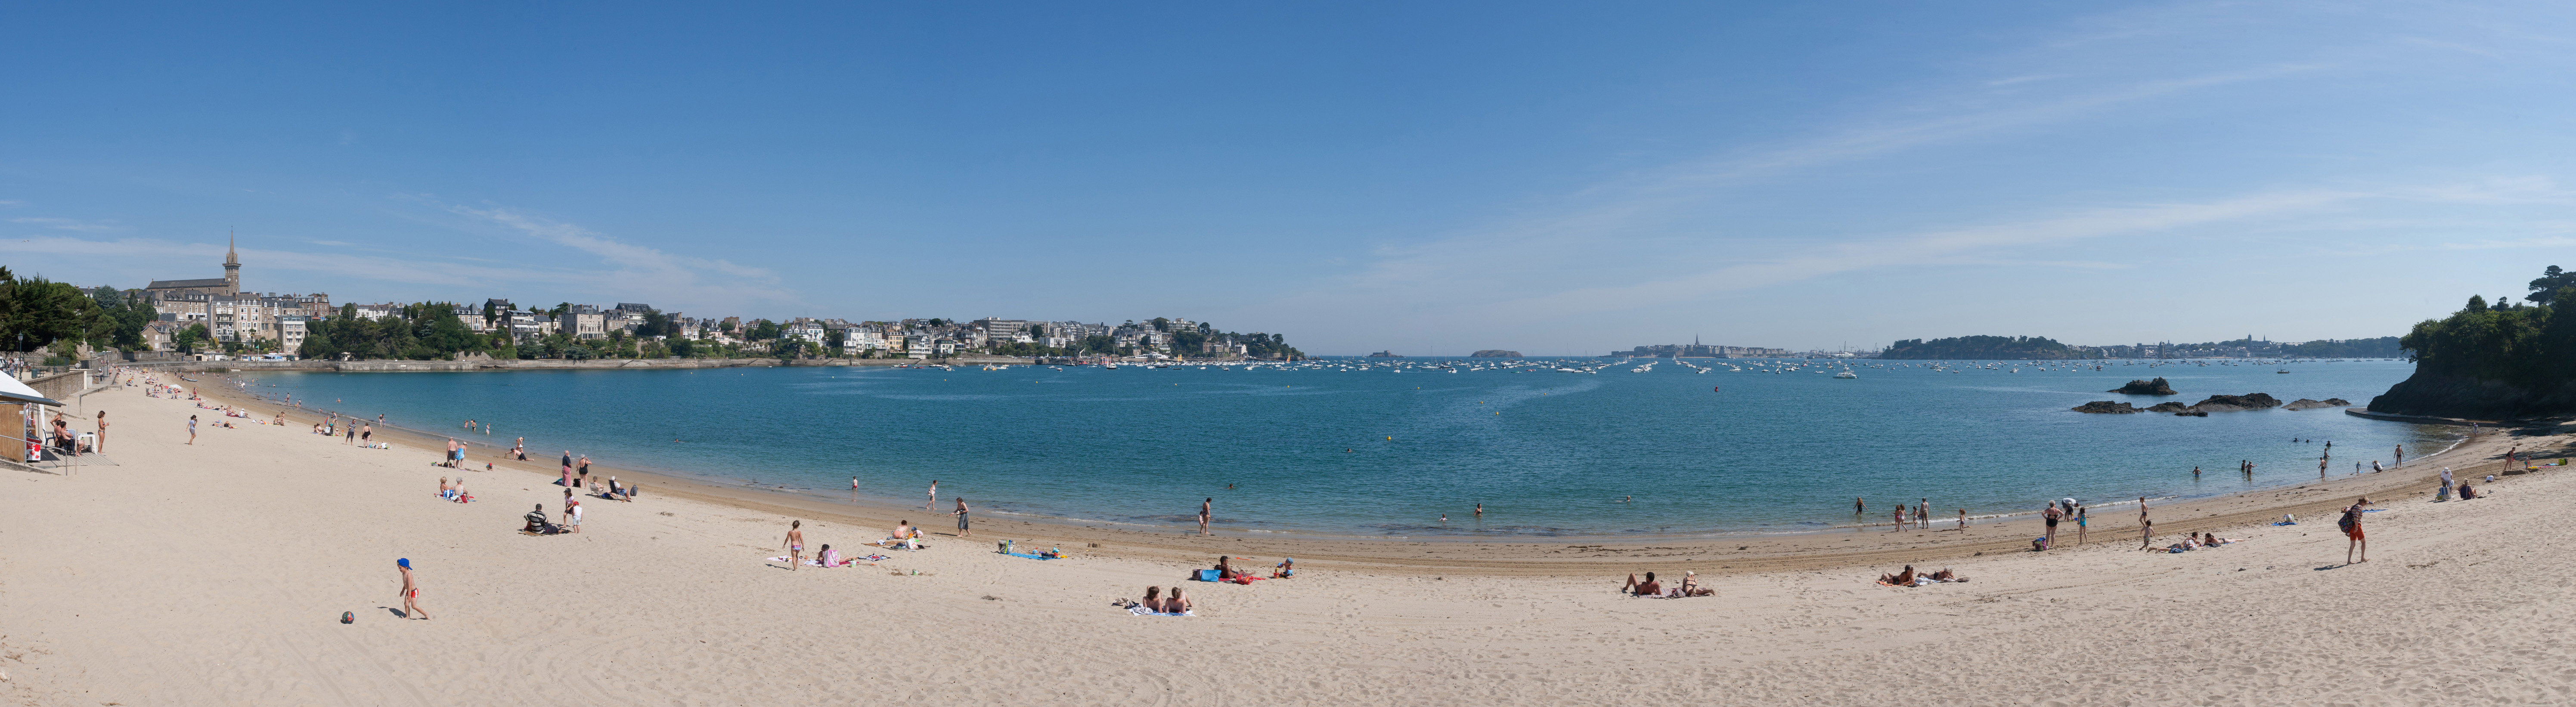 Dinard France  city photo : Description Dinard Beach Panorama, Brittany, France July 2011